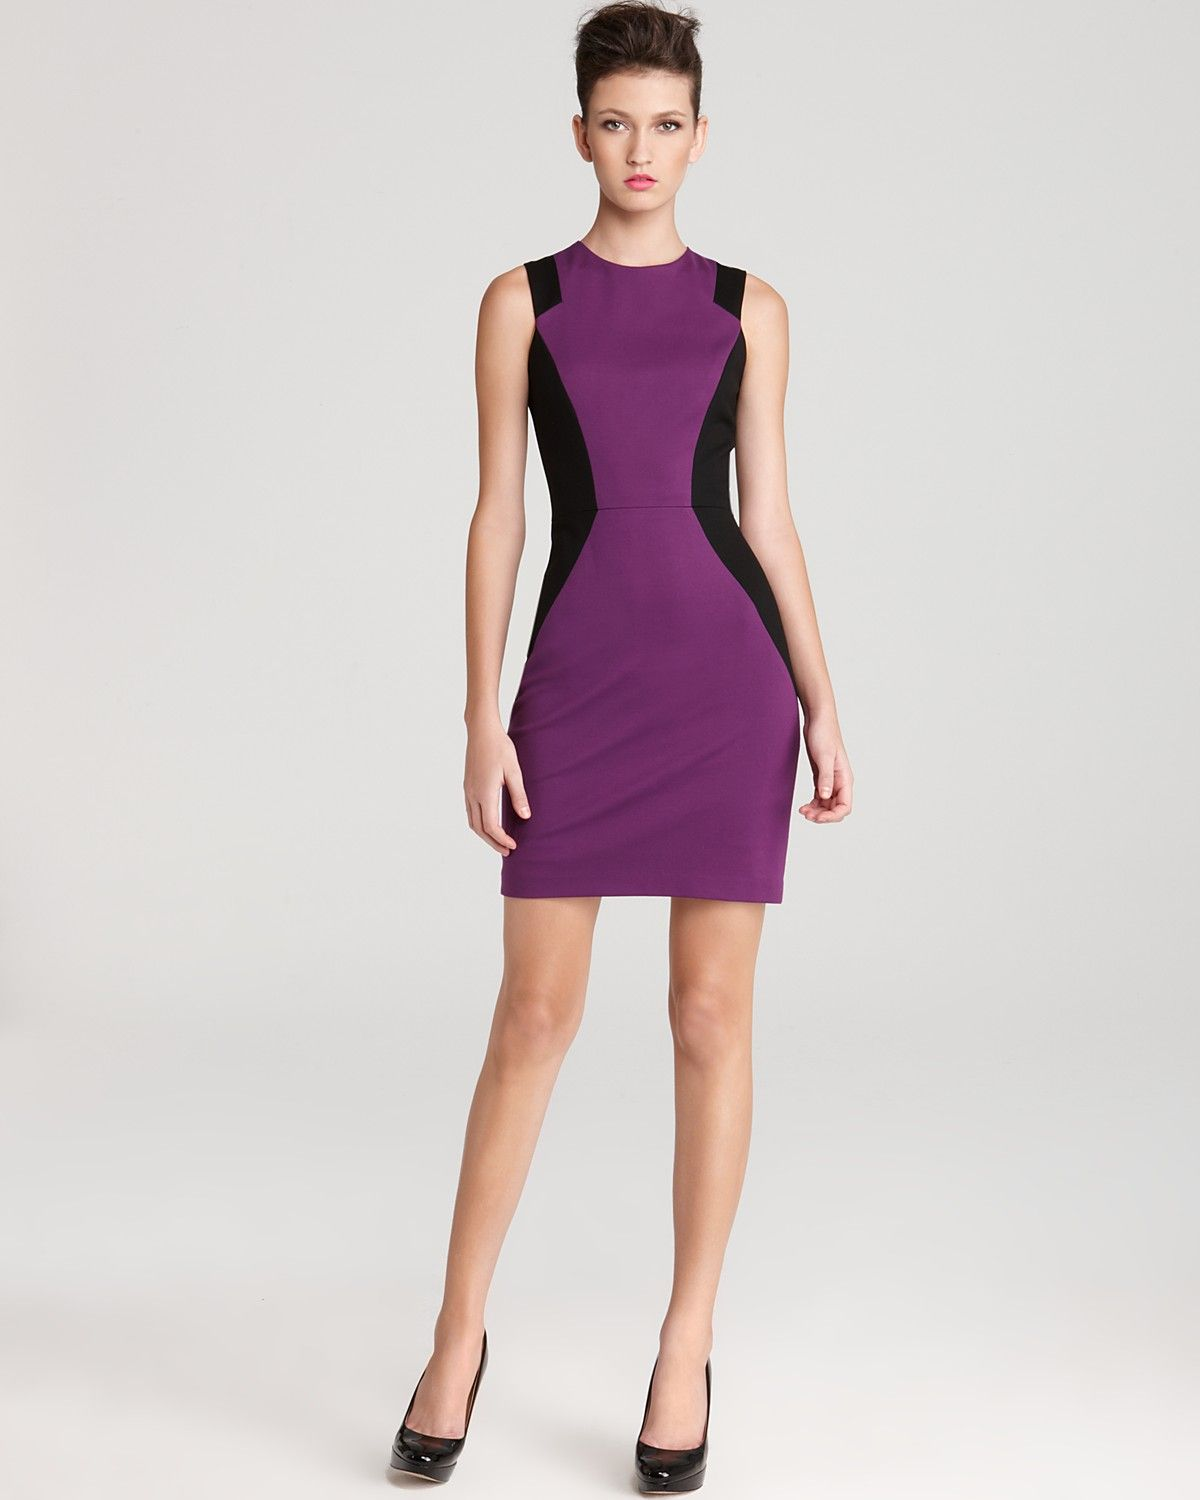 Cynthia Steffe Color Block Dress - Aubrey Sleeveless Panel ...